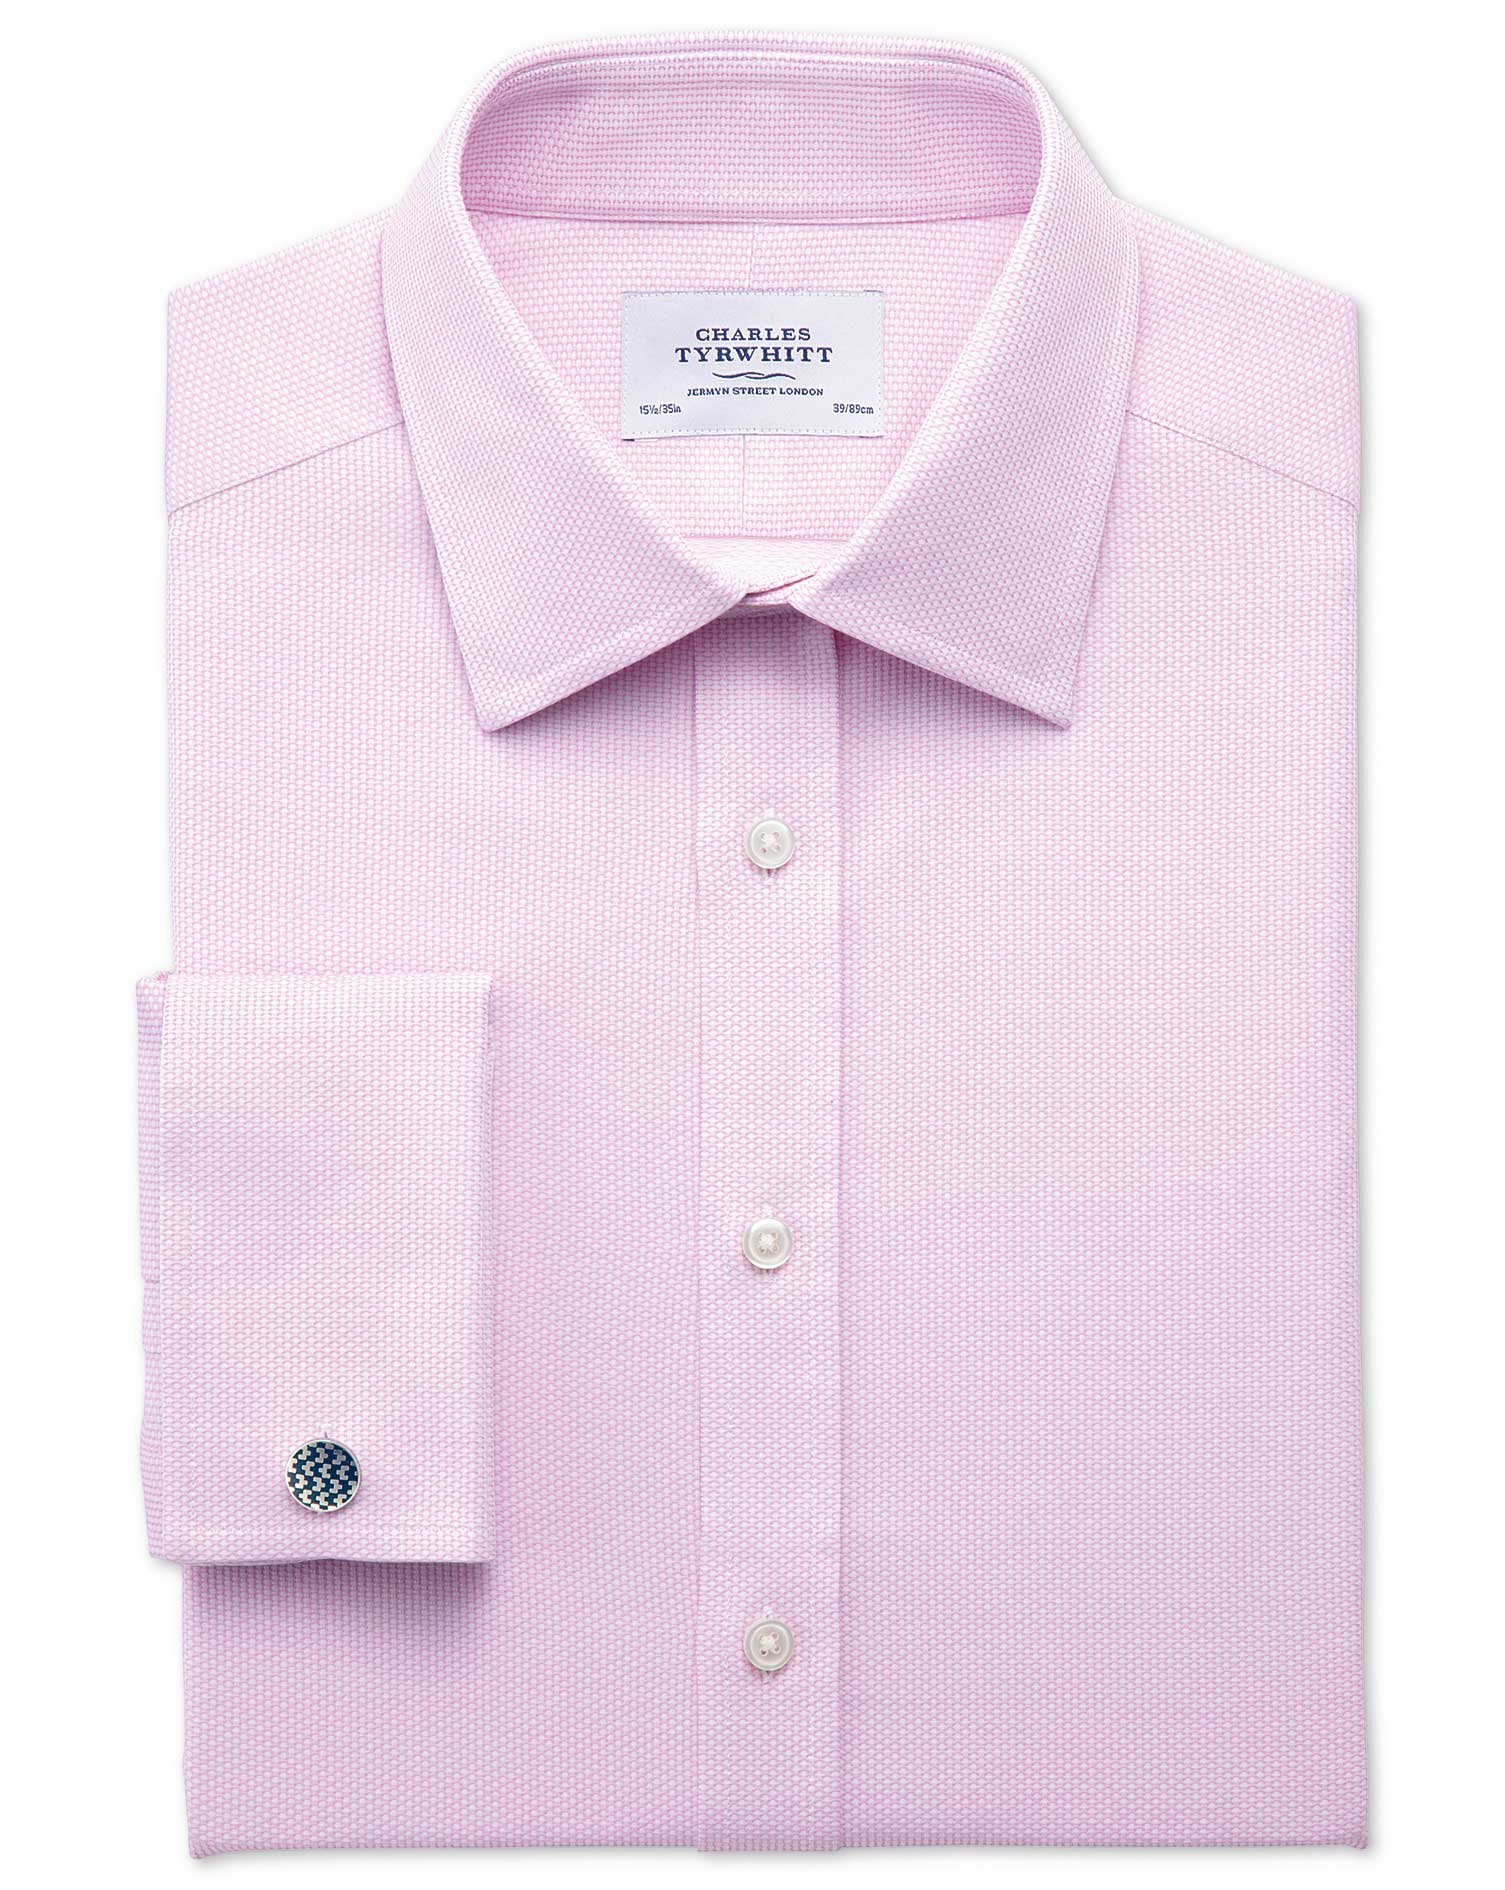 Extra Slim Fit Egyptian Cotton Diamond Texture Pink Formal Shirt Single Cuff Size 16/34 by Charles T